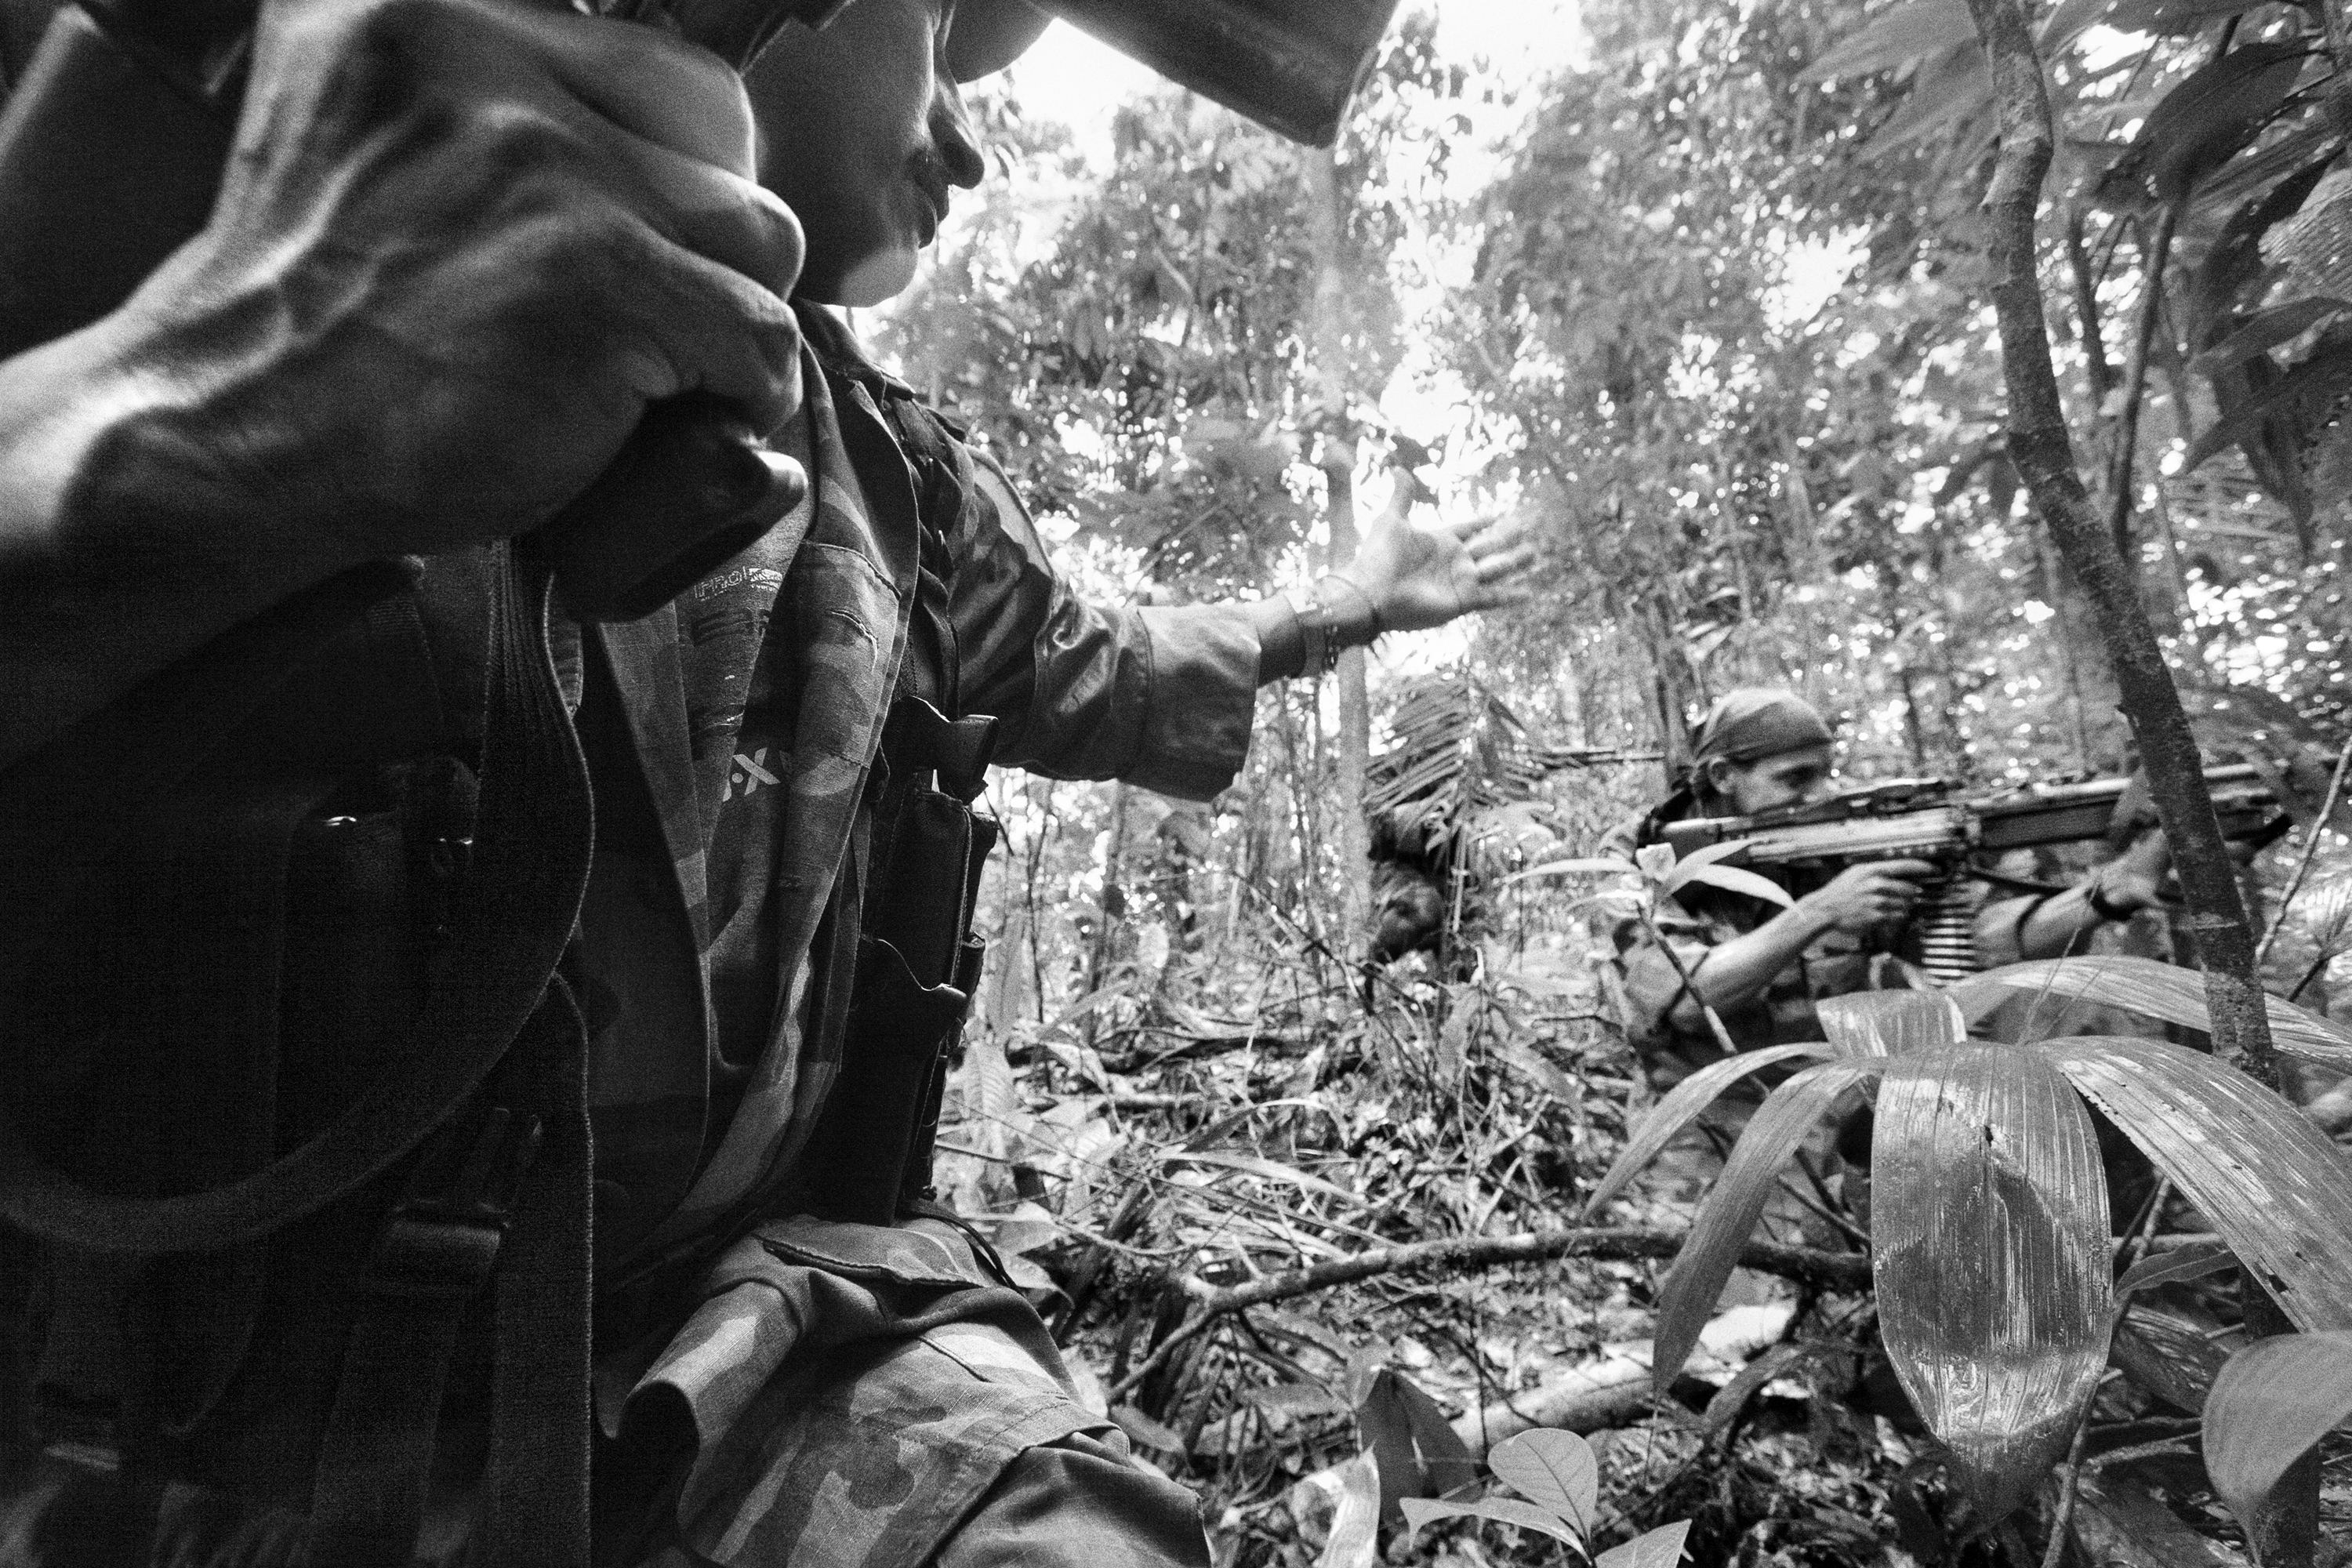 Members of the Bloque Movil Arturo Ruiz of the revolutionary armed forces of Colombia (FARC) during a patrol, Nov. 2007.  A special unit of FARC, they fought in many different regions of Colombia. About 35% of the Colombian Territory was under the strict control of the Revolutionary Forces of Colombia, or the FARC, as the self-declared Marxist-Leninist guerrilla group is known.